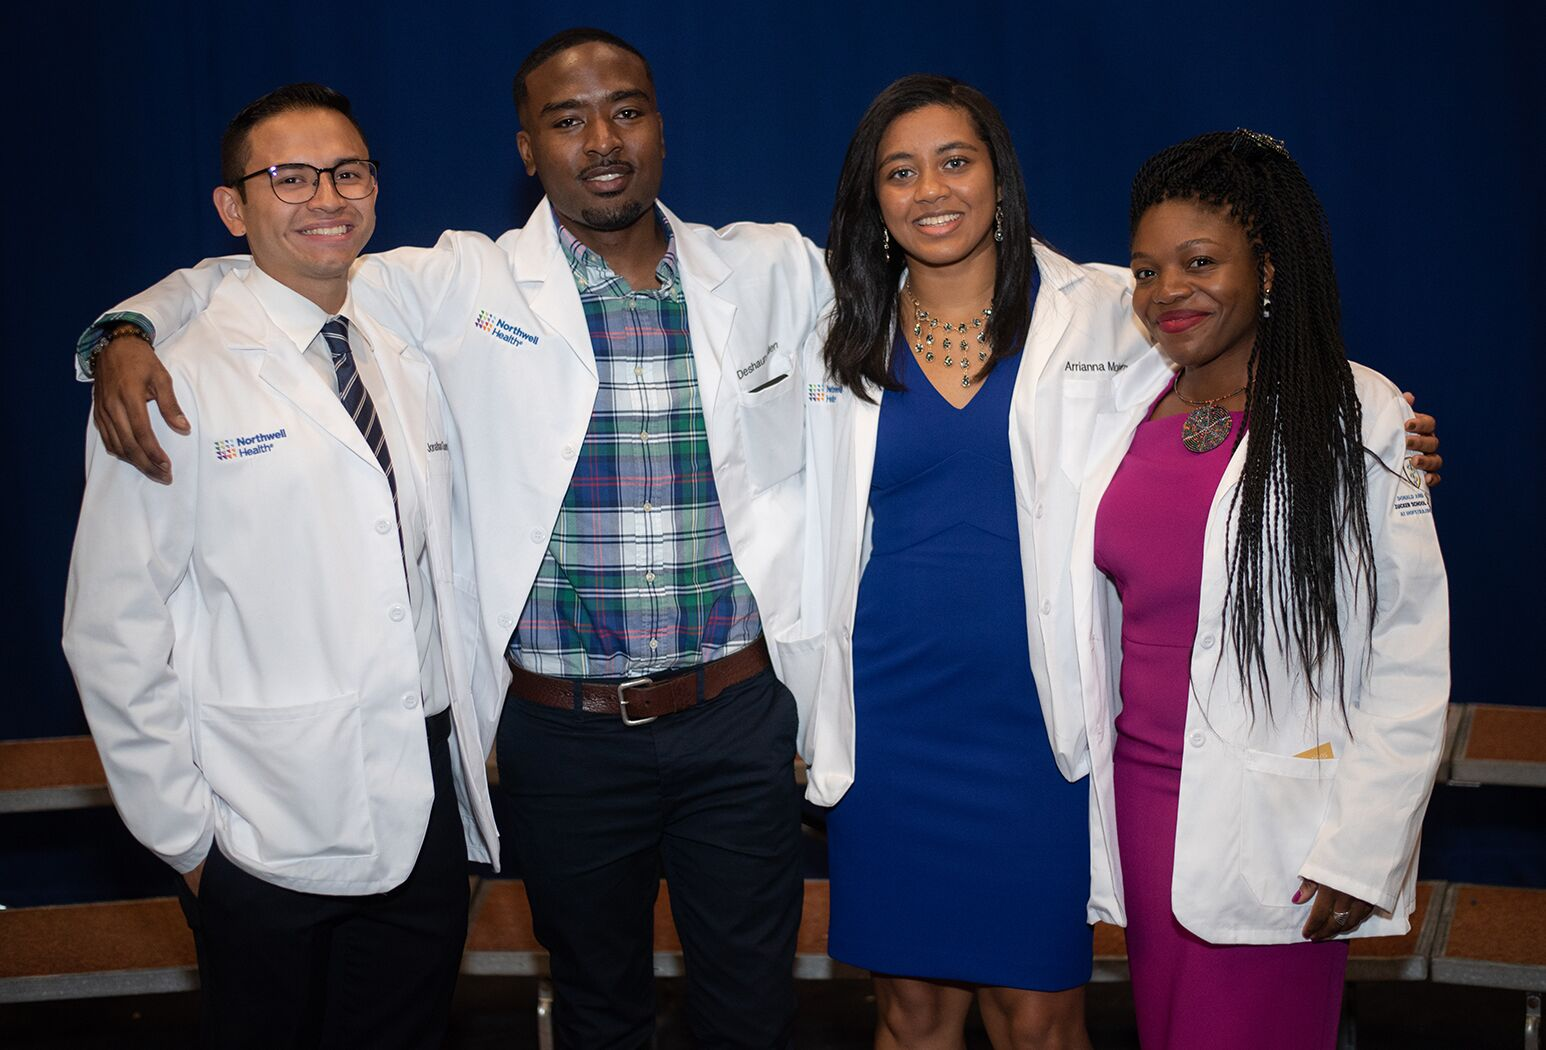 From left: Medical students Jonathan Guevara, Deshaun Allen, Arrianna Mohammed, and Joy Achuonjei celebrate the start of the journey to become medical doctors.